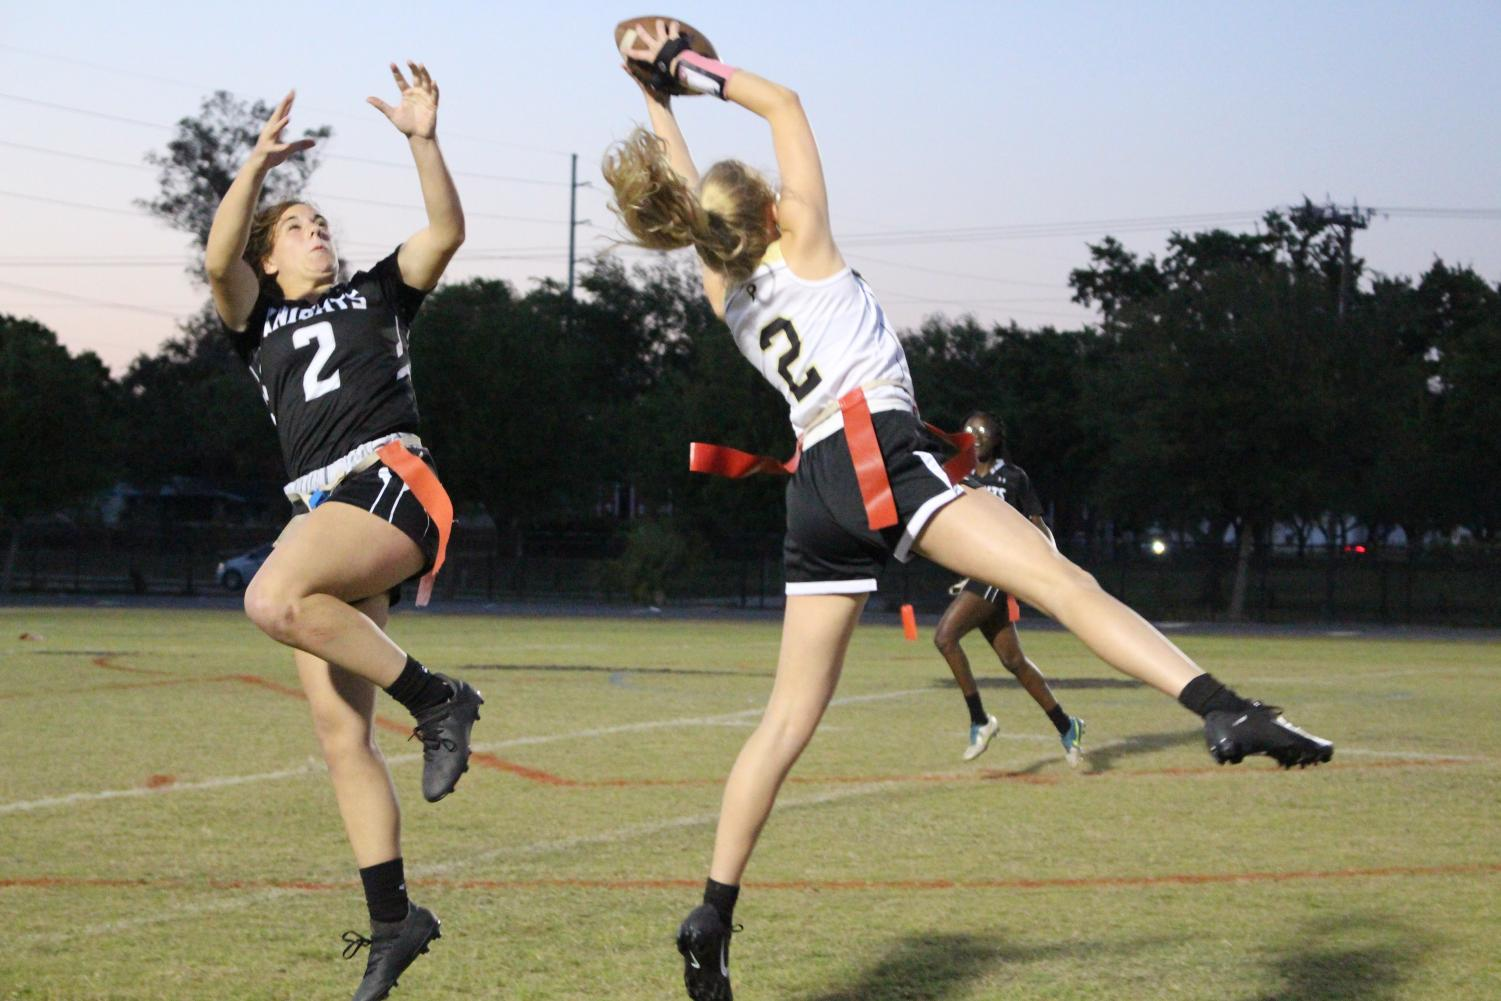 Receiver Emily Kemp ('20) attempts to make an interception